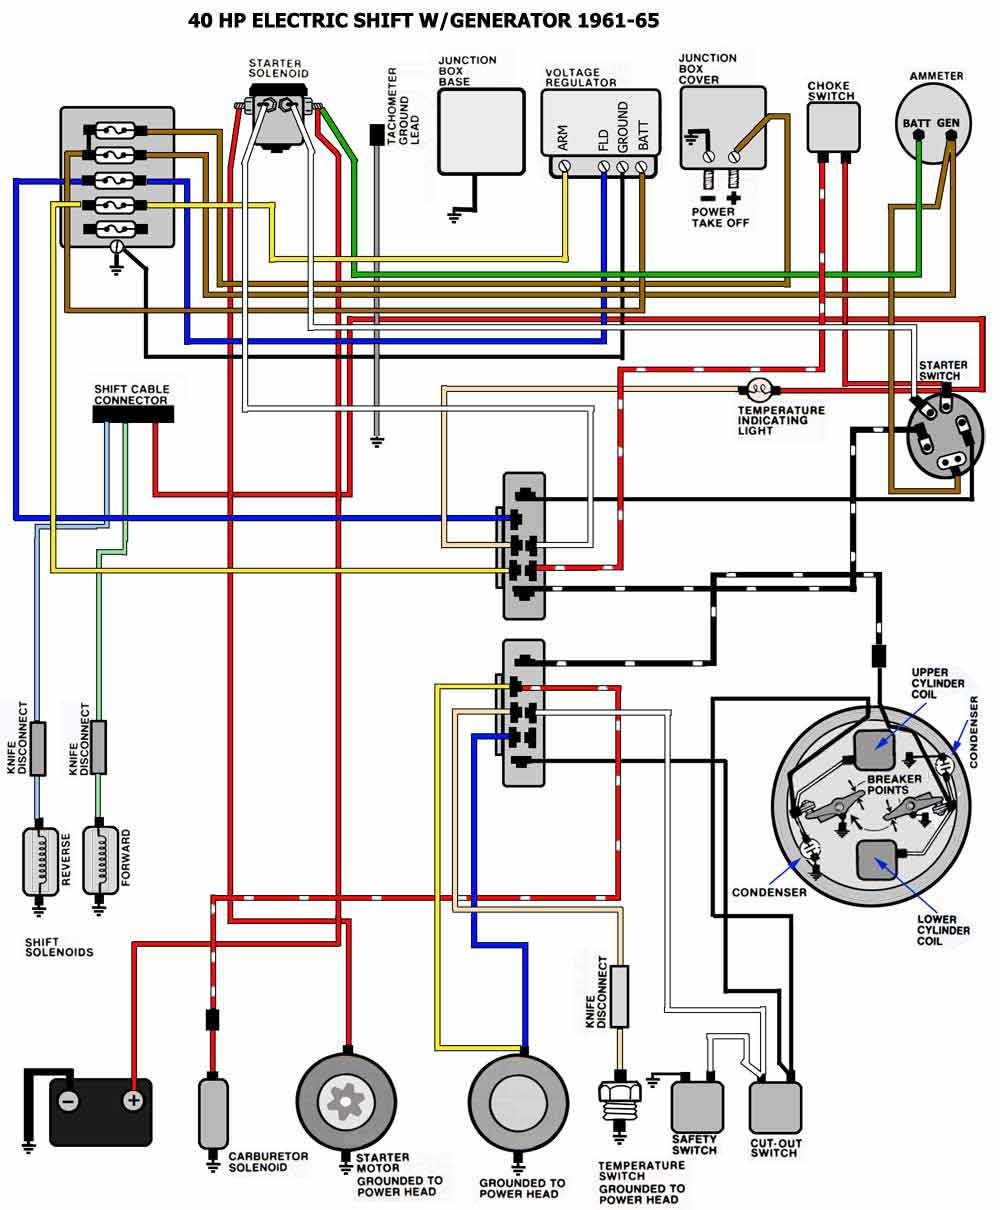 Ignition Switch 50 Hp Mercury Outboard Wiring Diagram from i3.wp.com